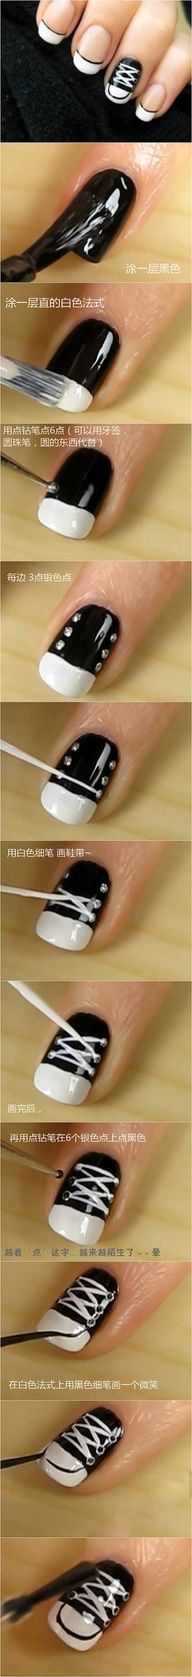 Converse nails...cute, I did solid nails & one converse nail & have gotten lite of compliments on how cute